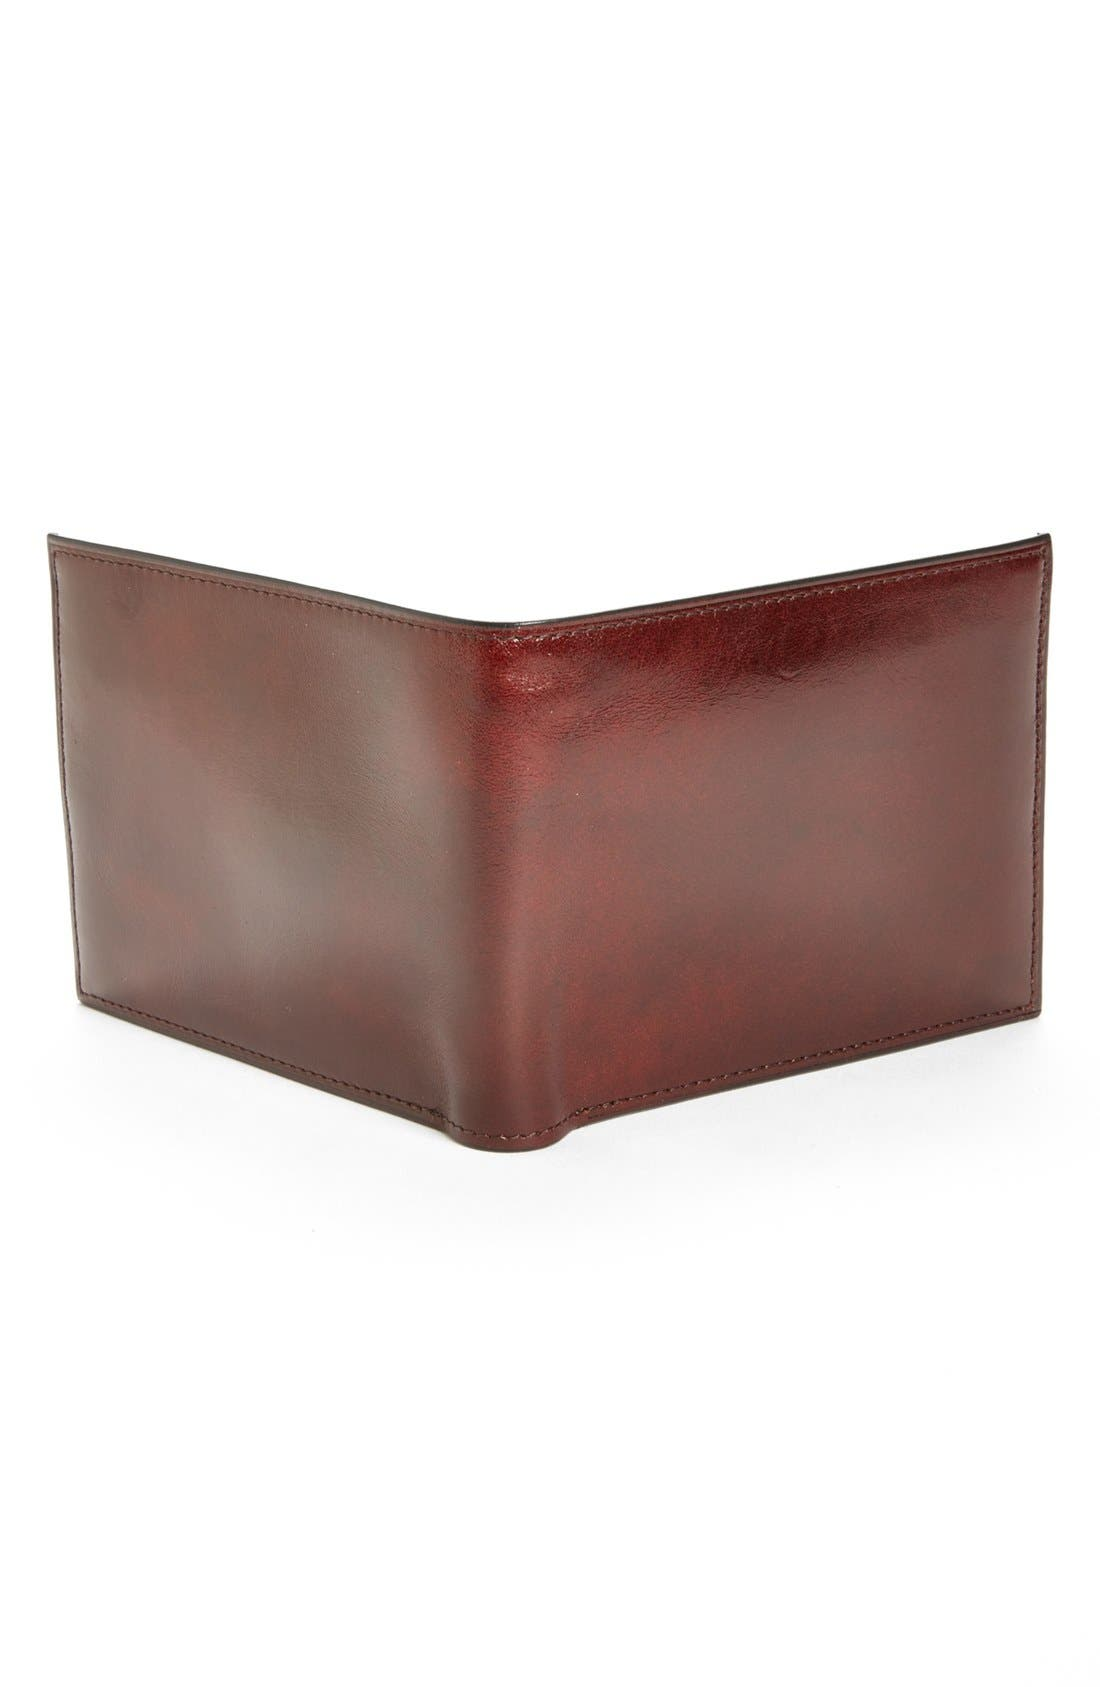 ID Flap Leather Wallet,                             Alternate thumbnail 2, color,                             DARK BROWN